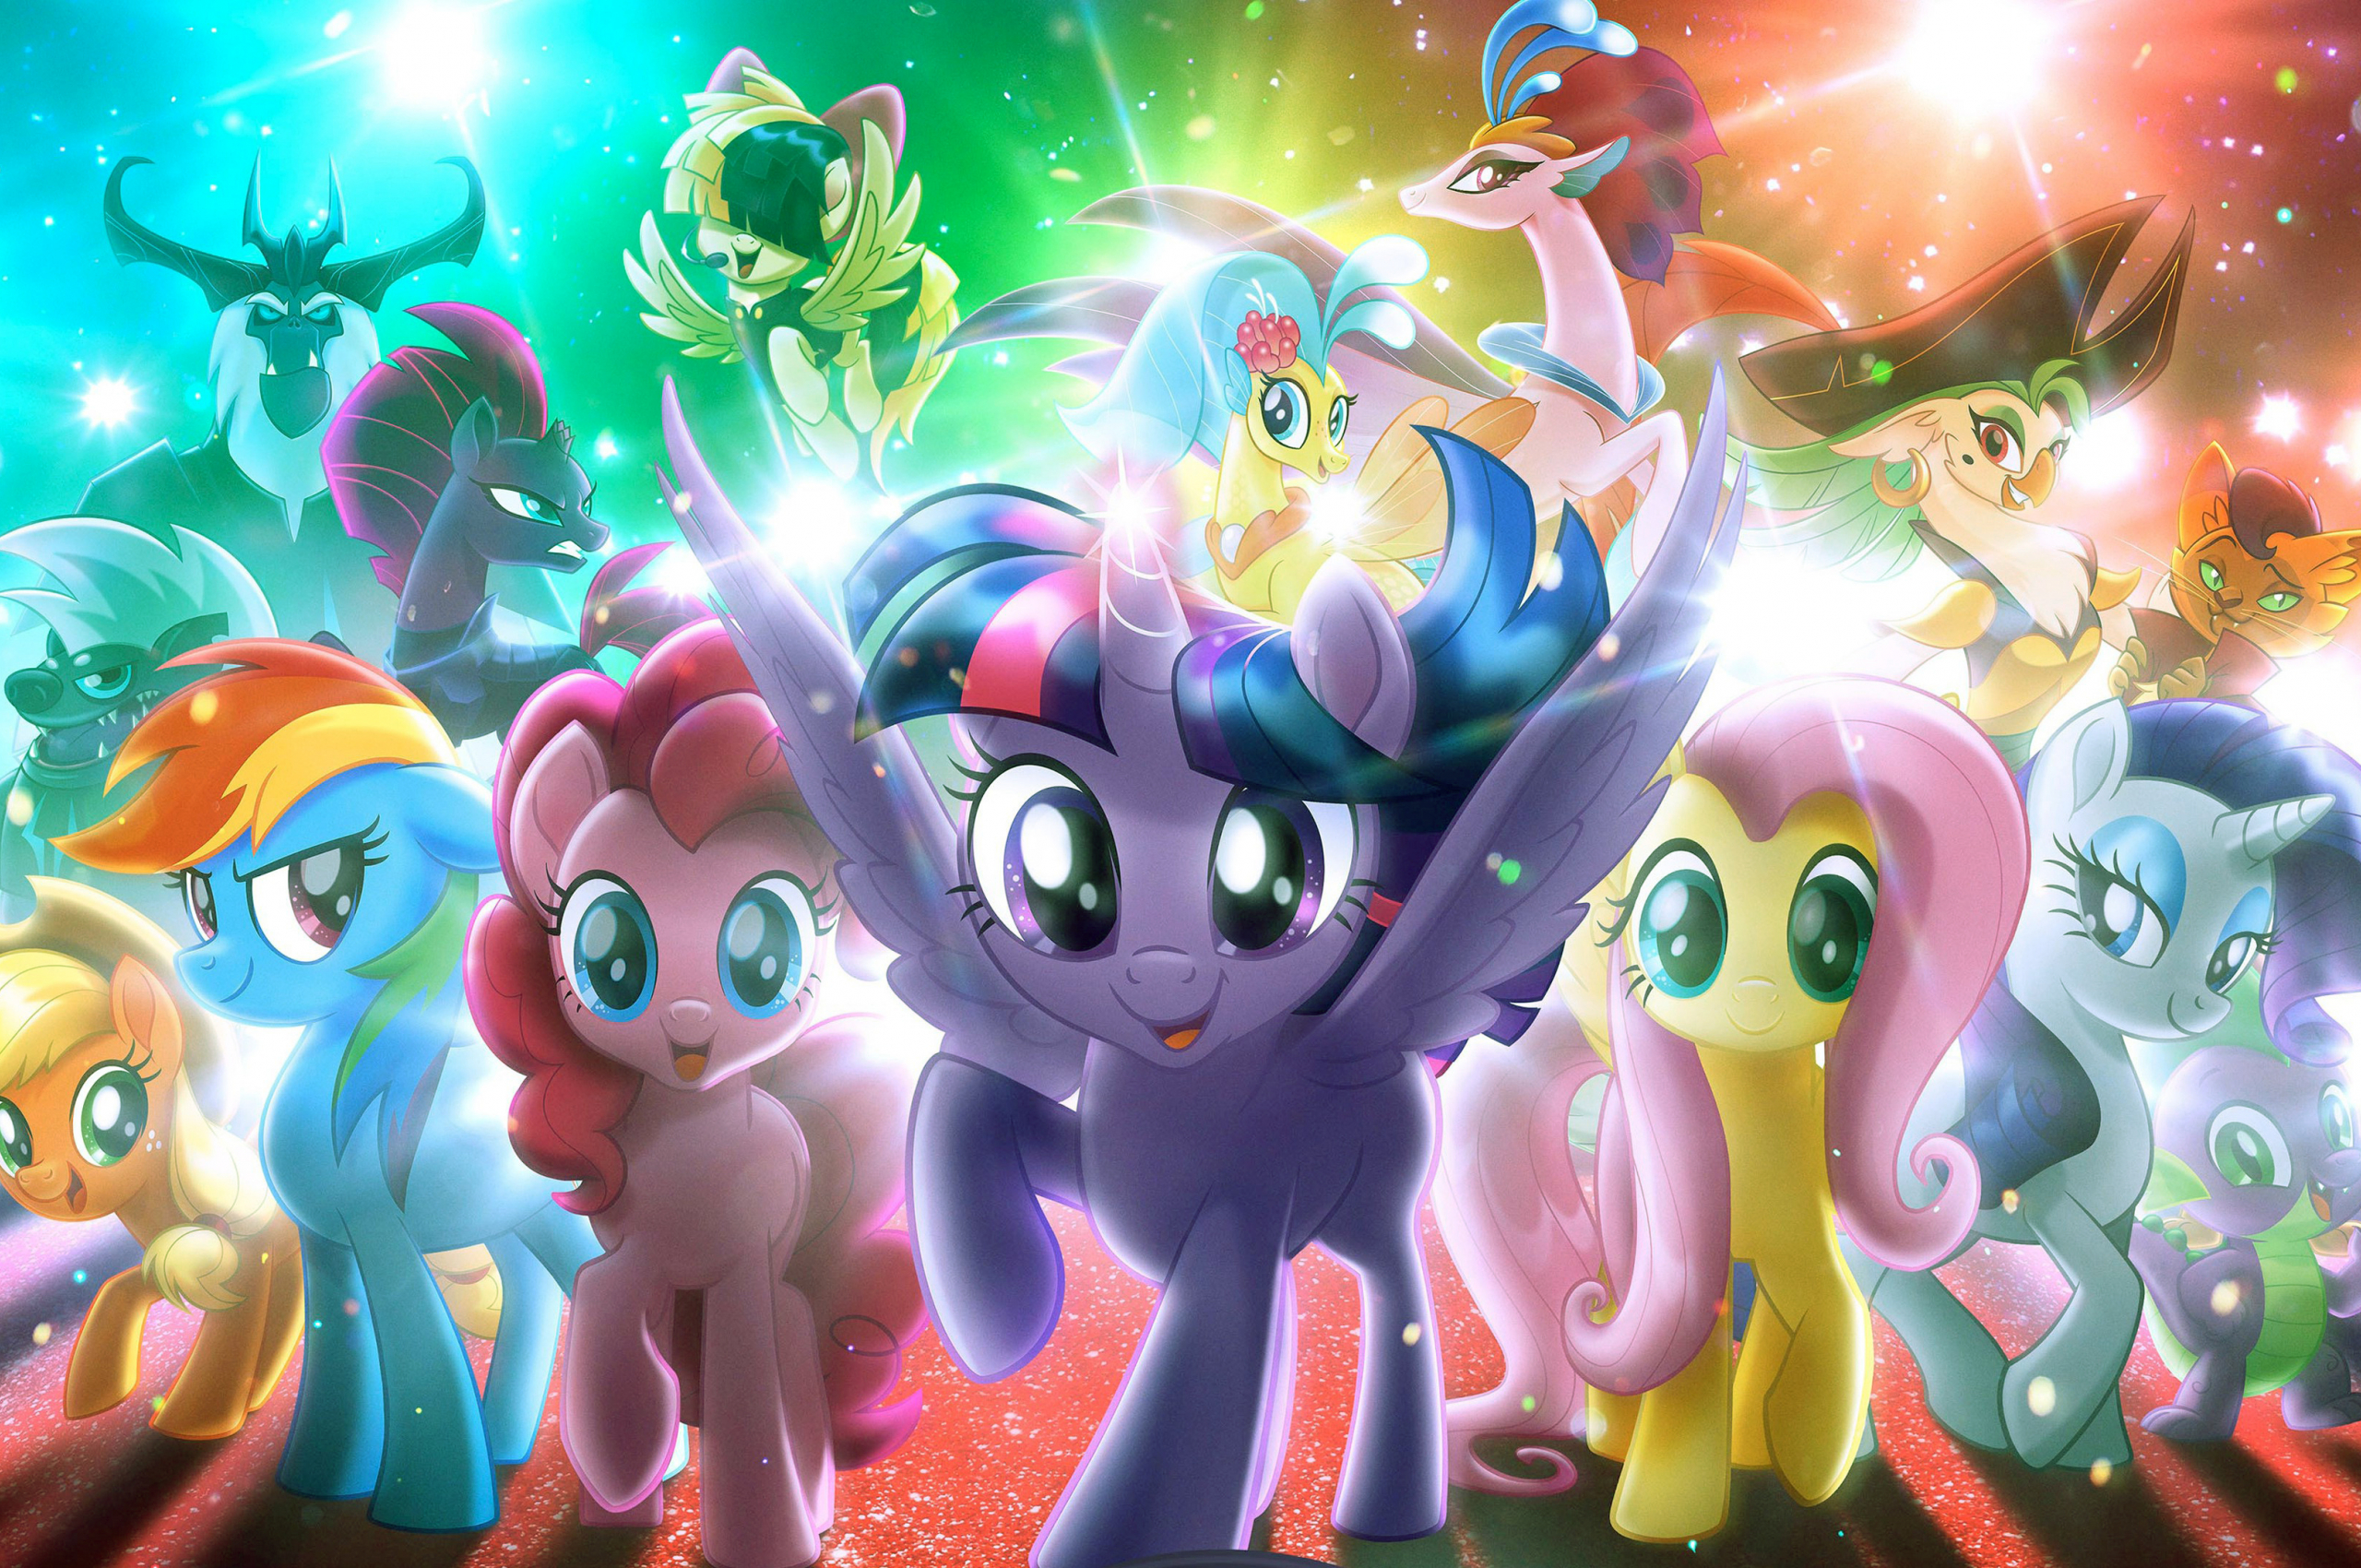 Free Download My Little Pony 2017 4k Wallpapers New Hd Wallpapers